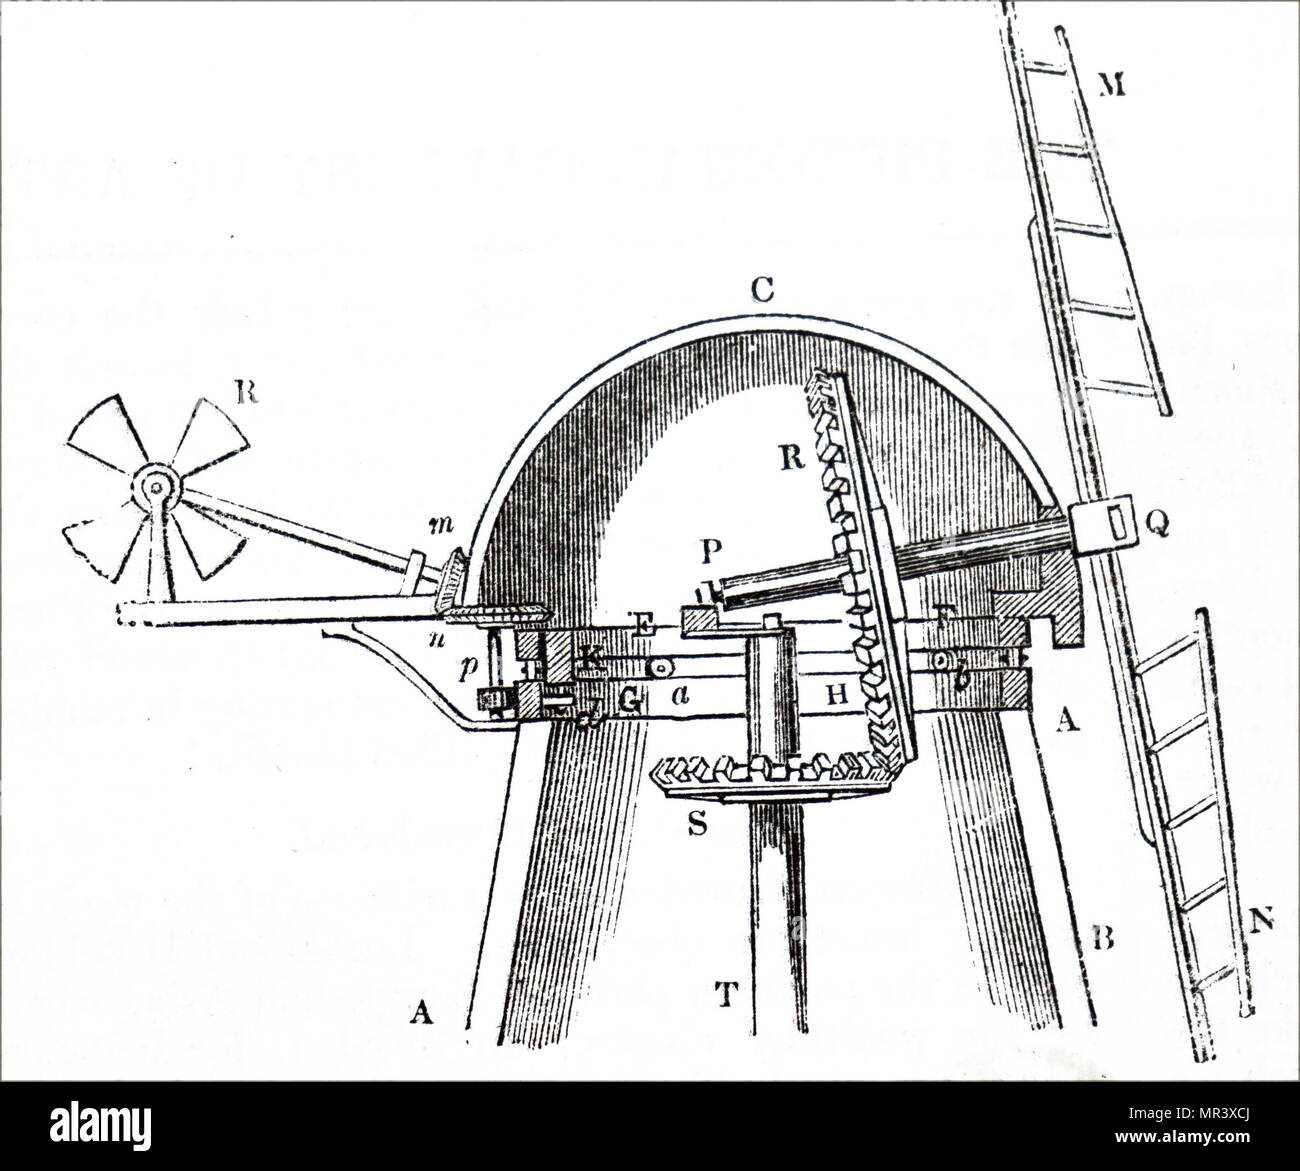 Engraving depicting the gearing at the top of a windmill, showing how wind power caught by the sails is transferred to the driving shaft. Dated 19th century - Stock Image